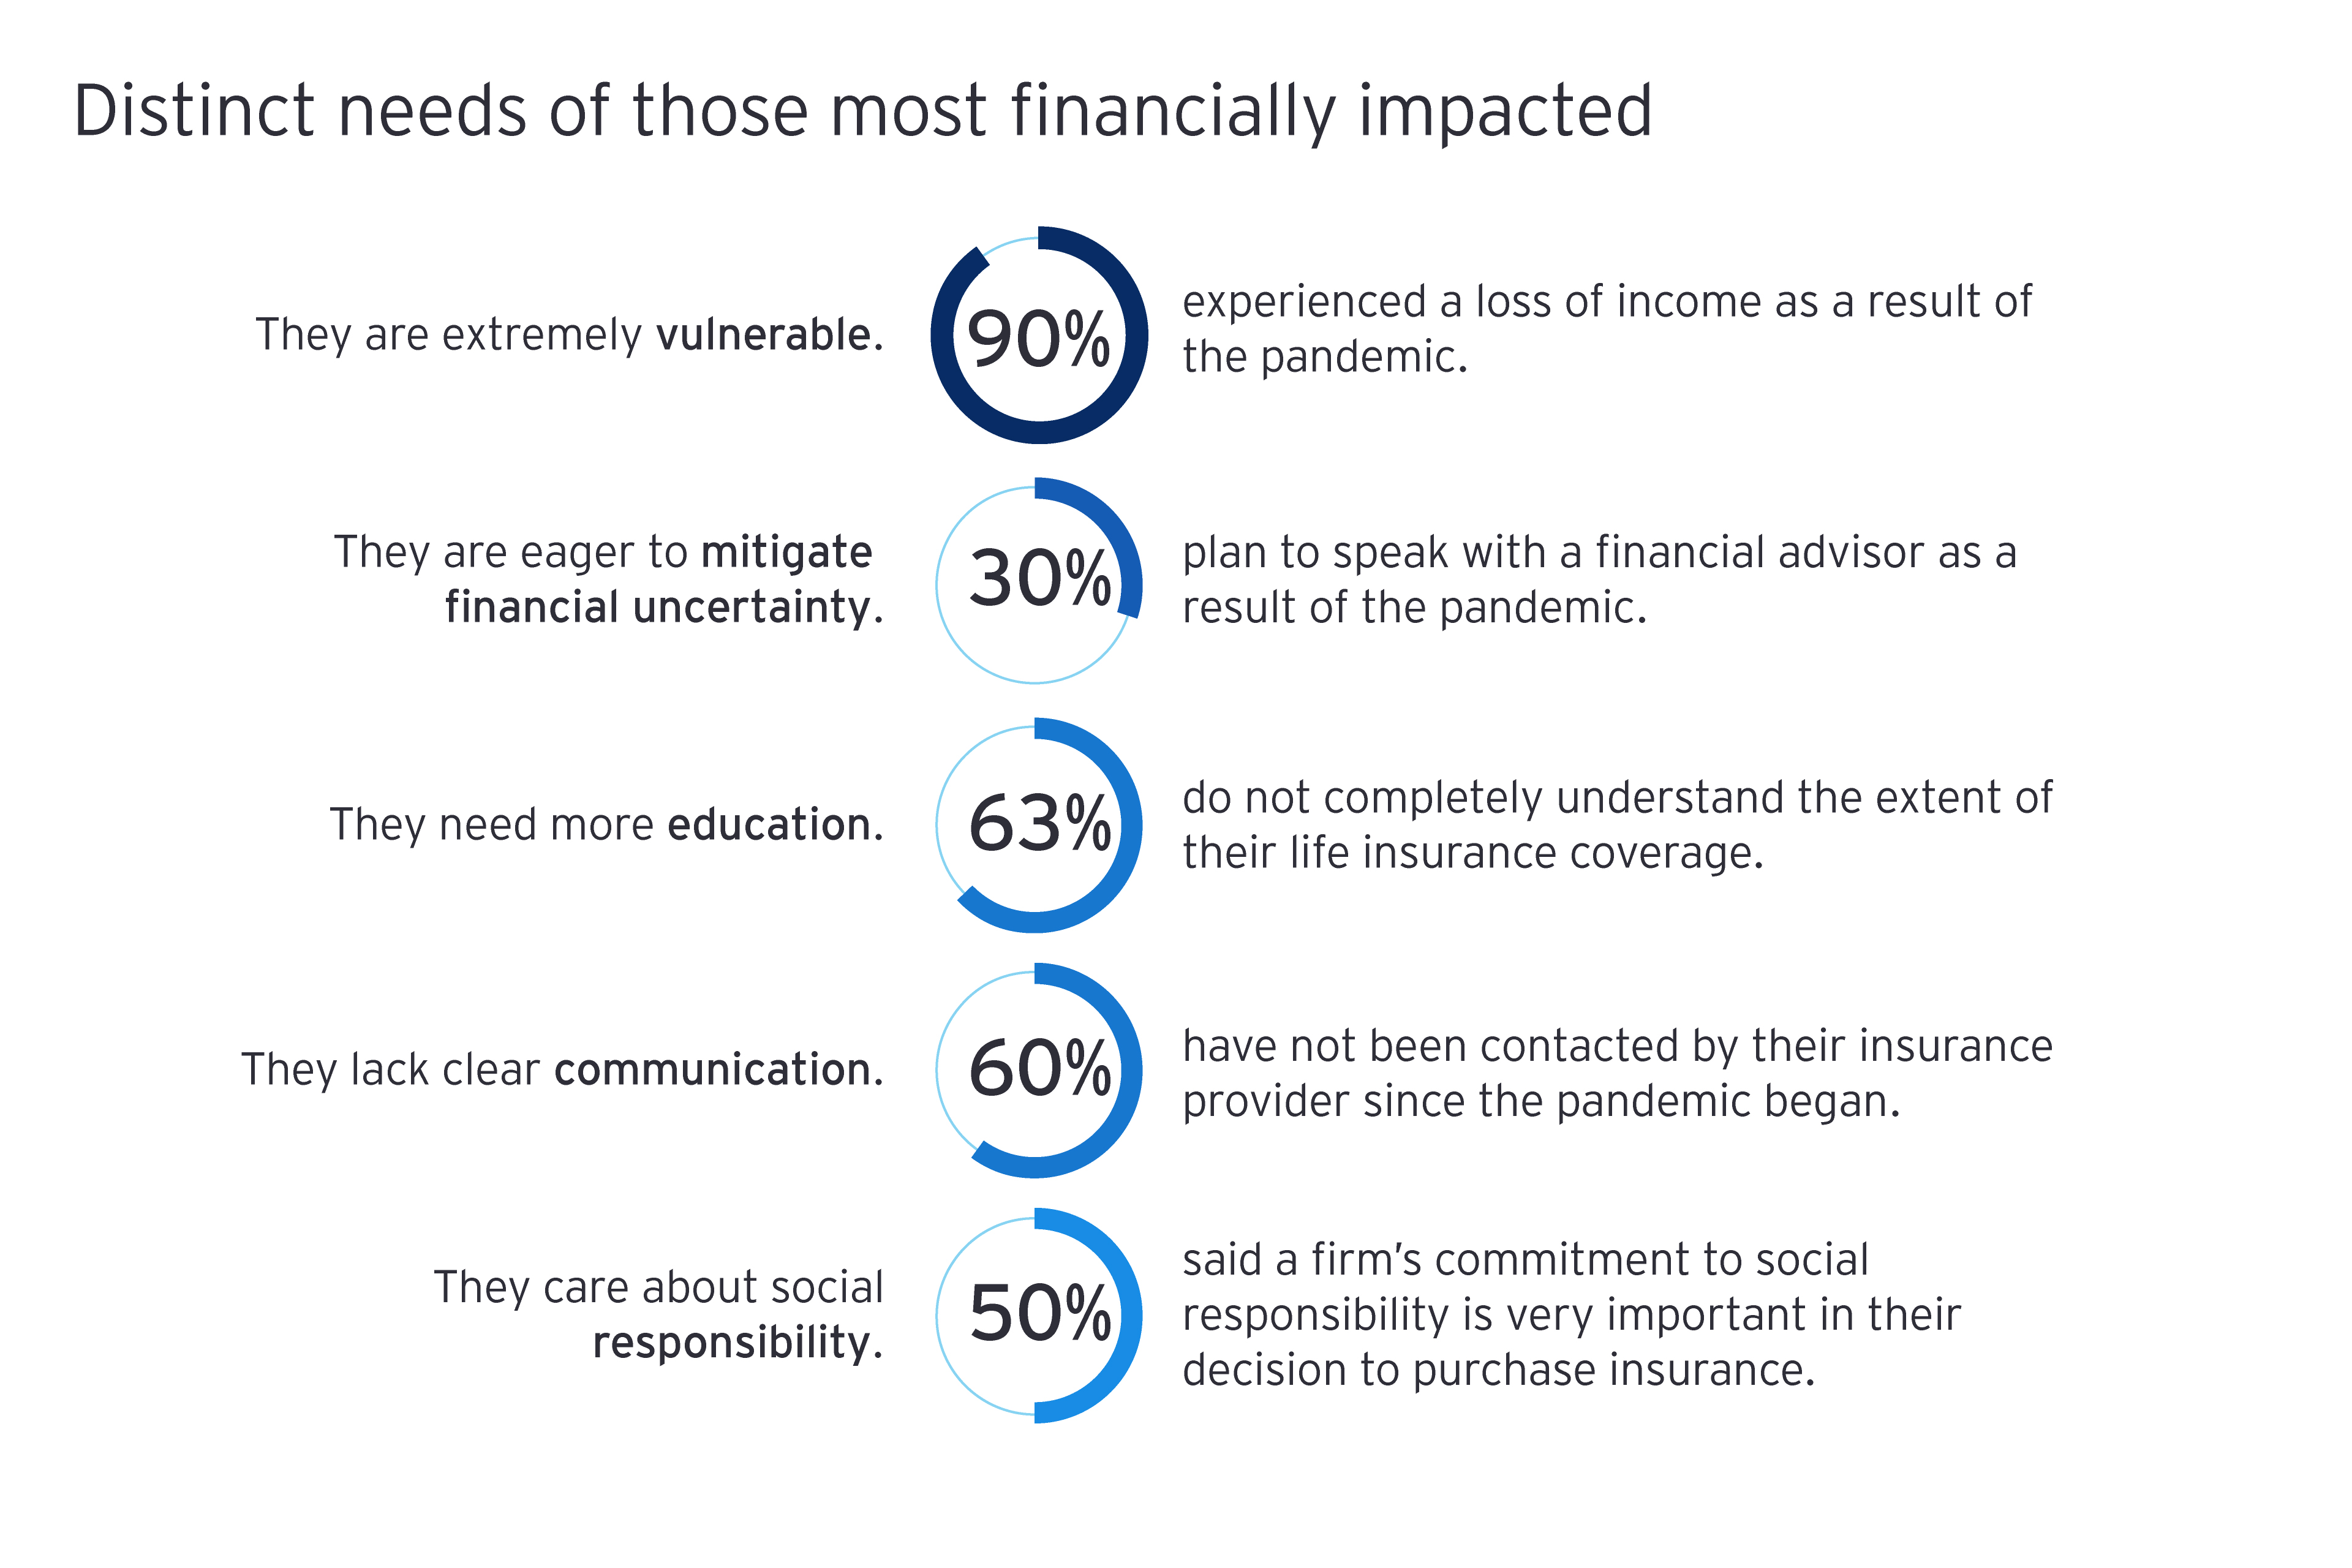 Distinct needs of those most financially impacted graphic